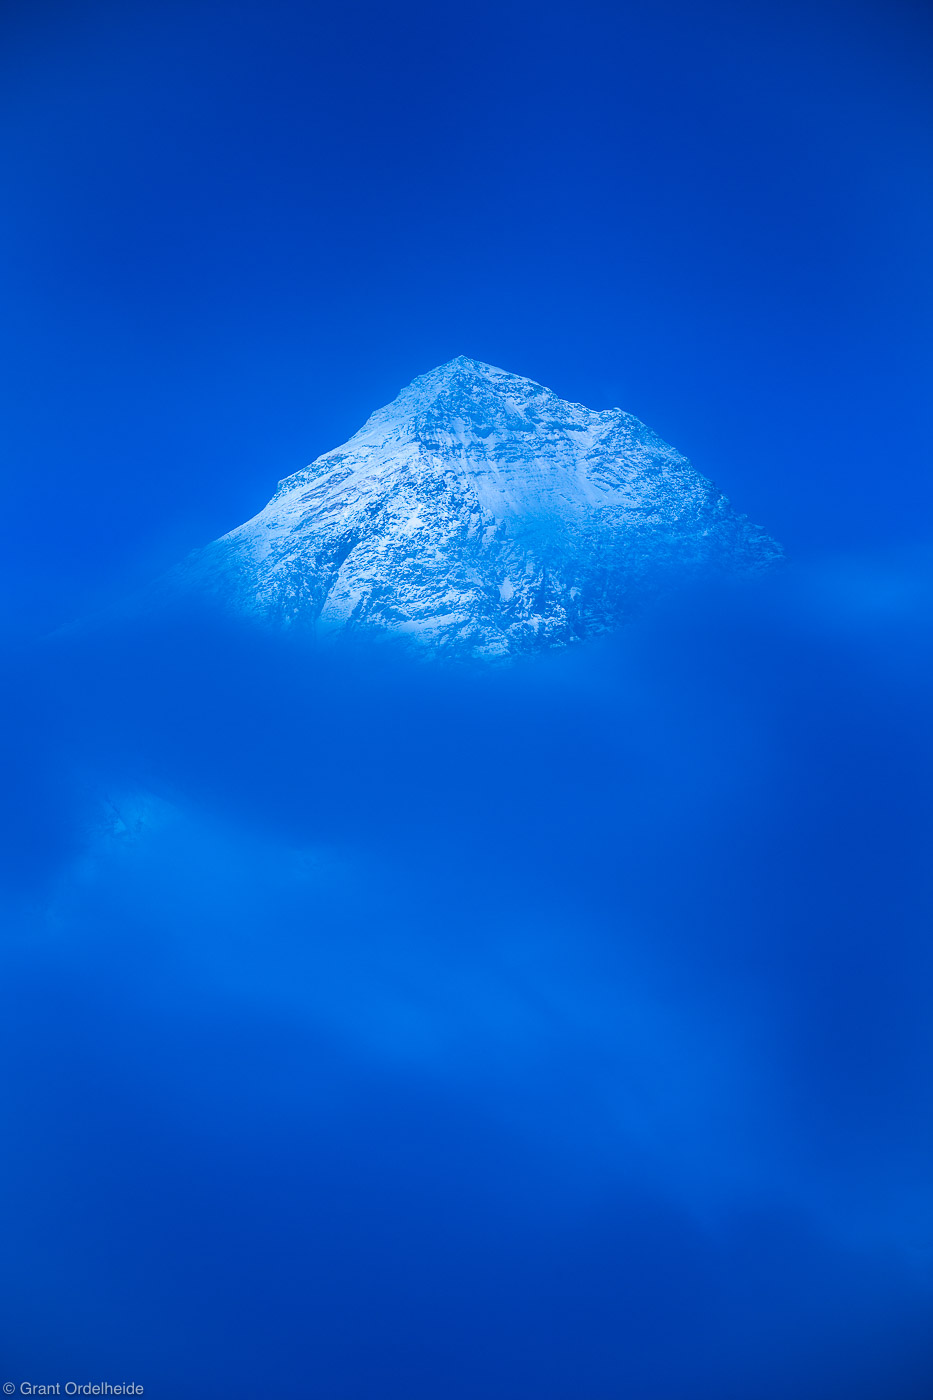 mount, everest, sagarmatha, national park, himalaya, nepal, highest, point, earth, emerges, fog, late, night, iconic, photo